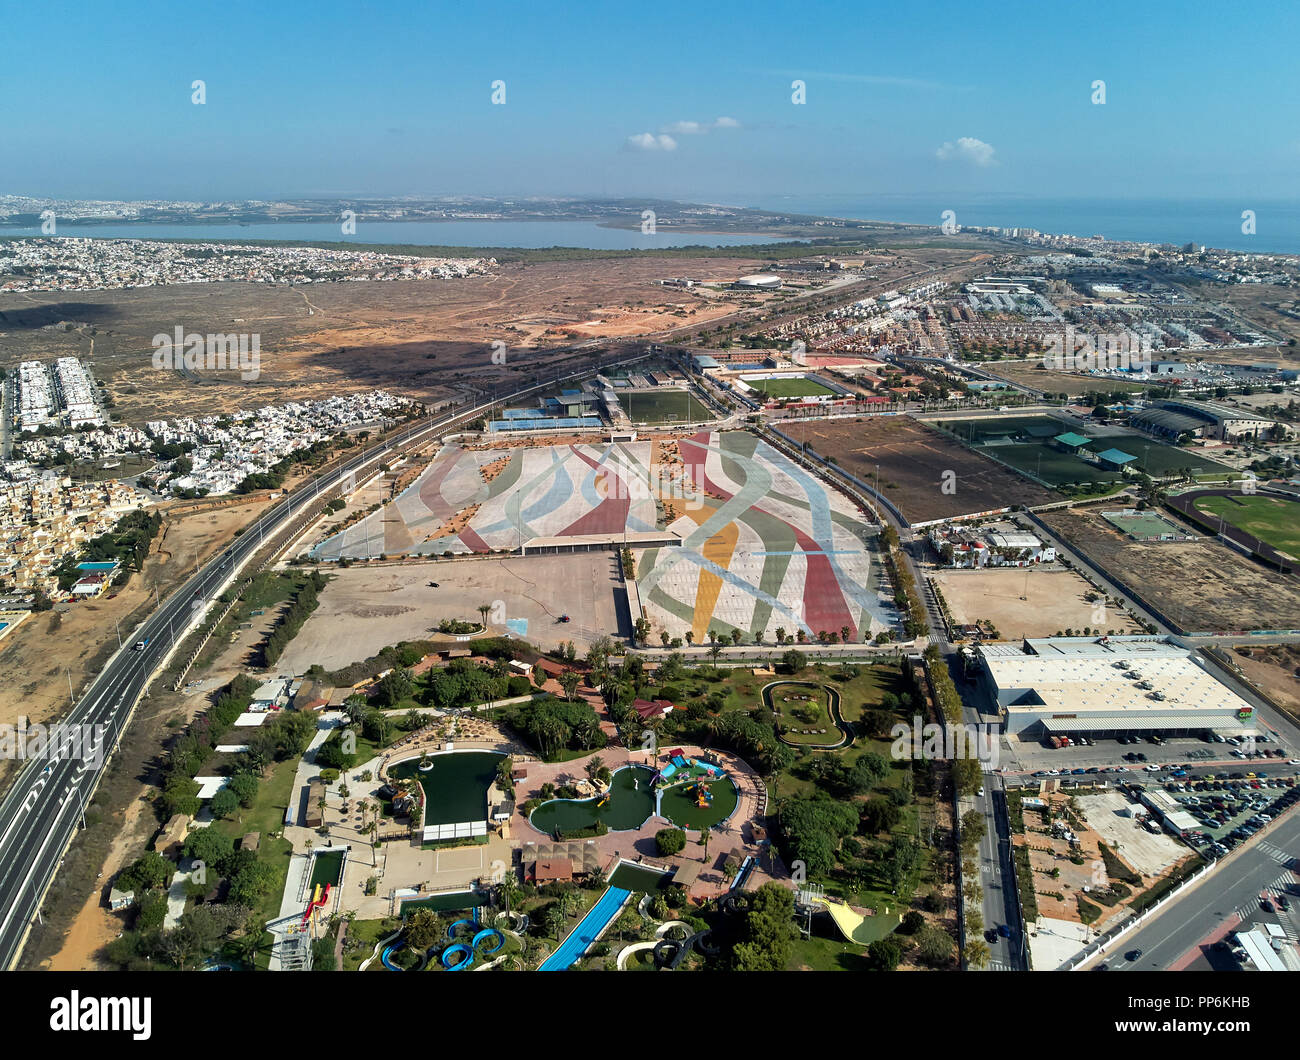 Aerial photography townscape, water park famous popular place of Torrevieja. Above view of empty market parking area, square for transport. Spain - Stock Image